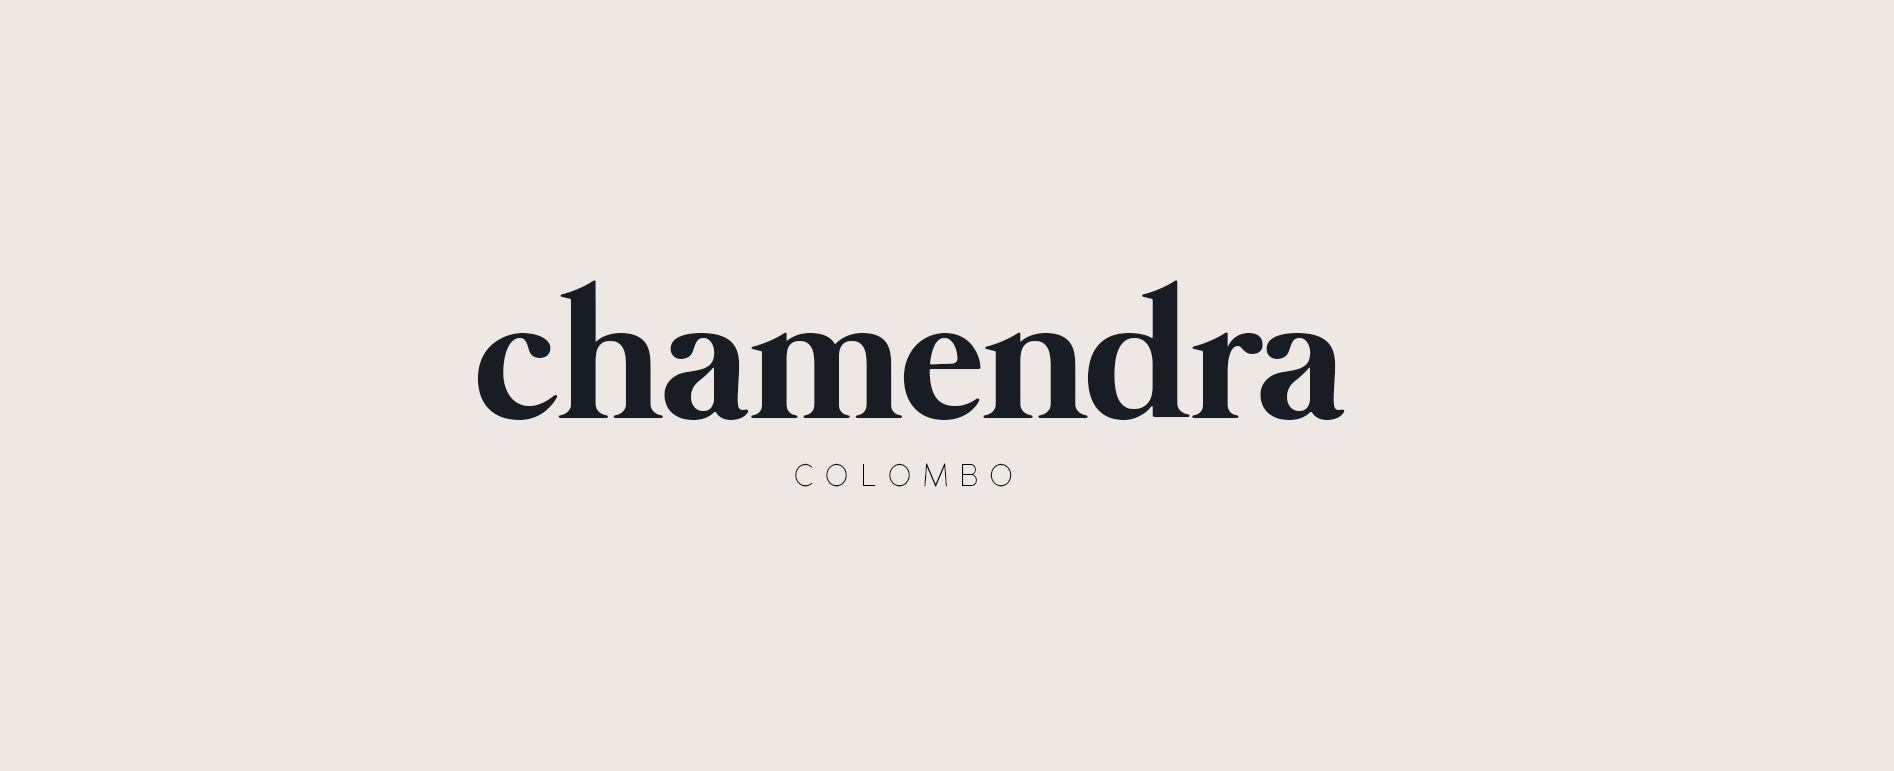 Chamendra Clothing Brand- Colombo